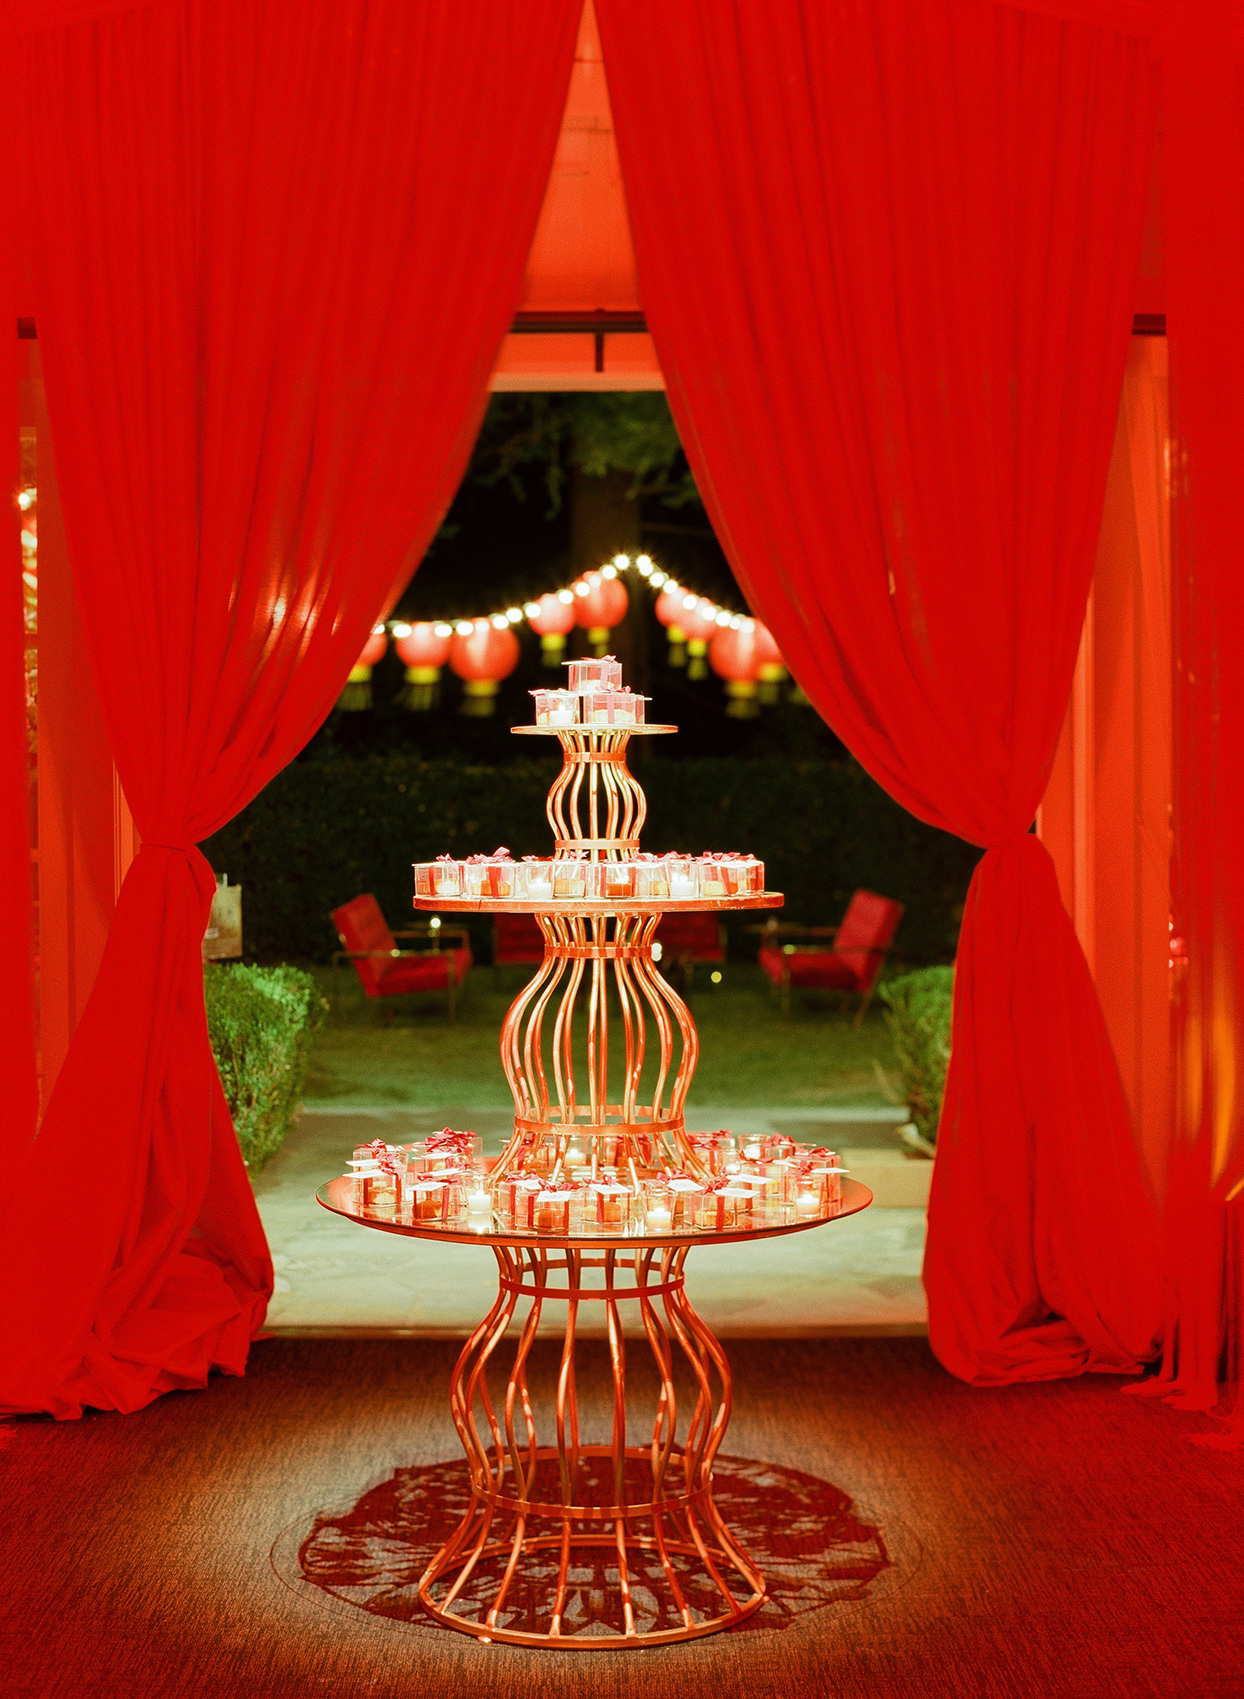 Wedding favors of mooncakes and lanterns